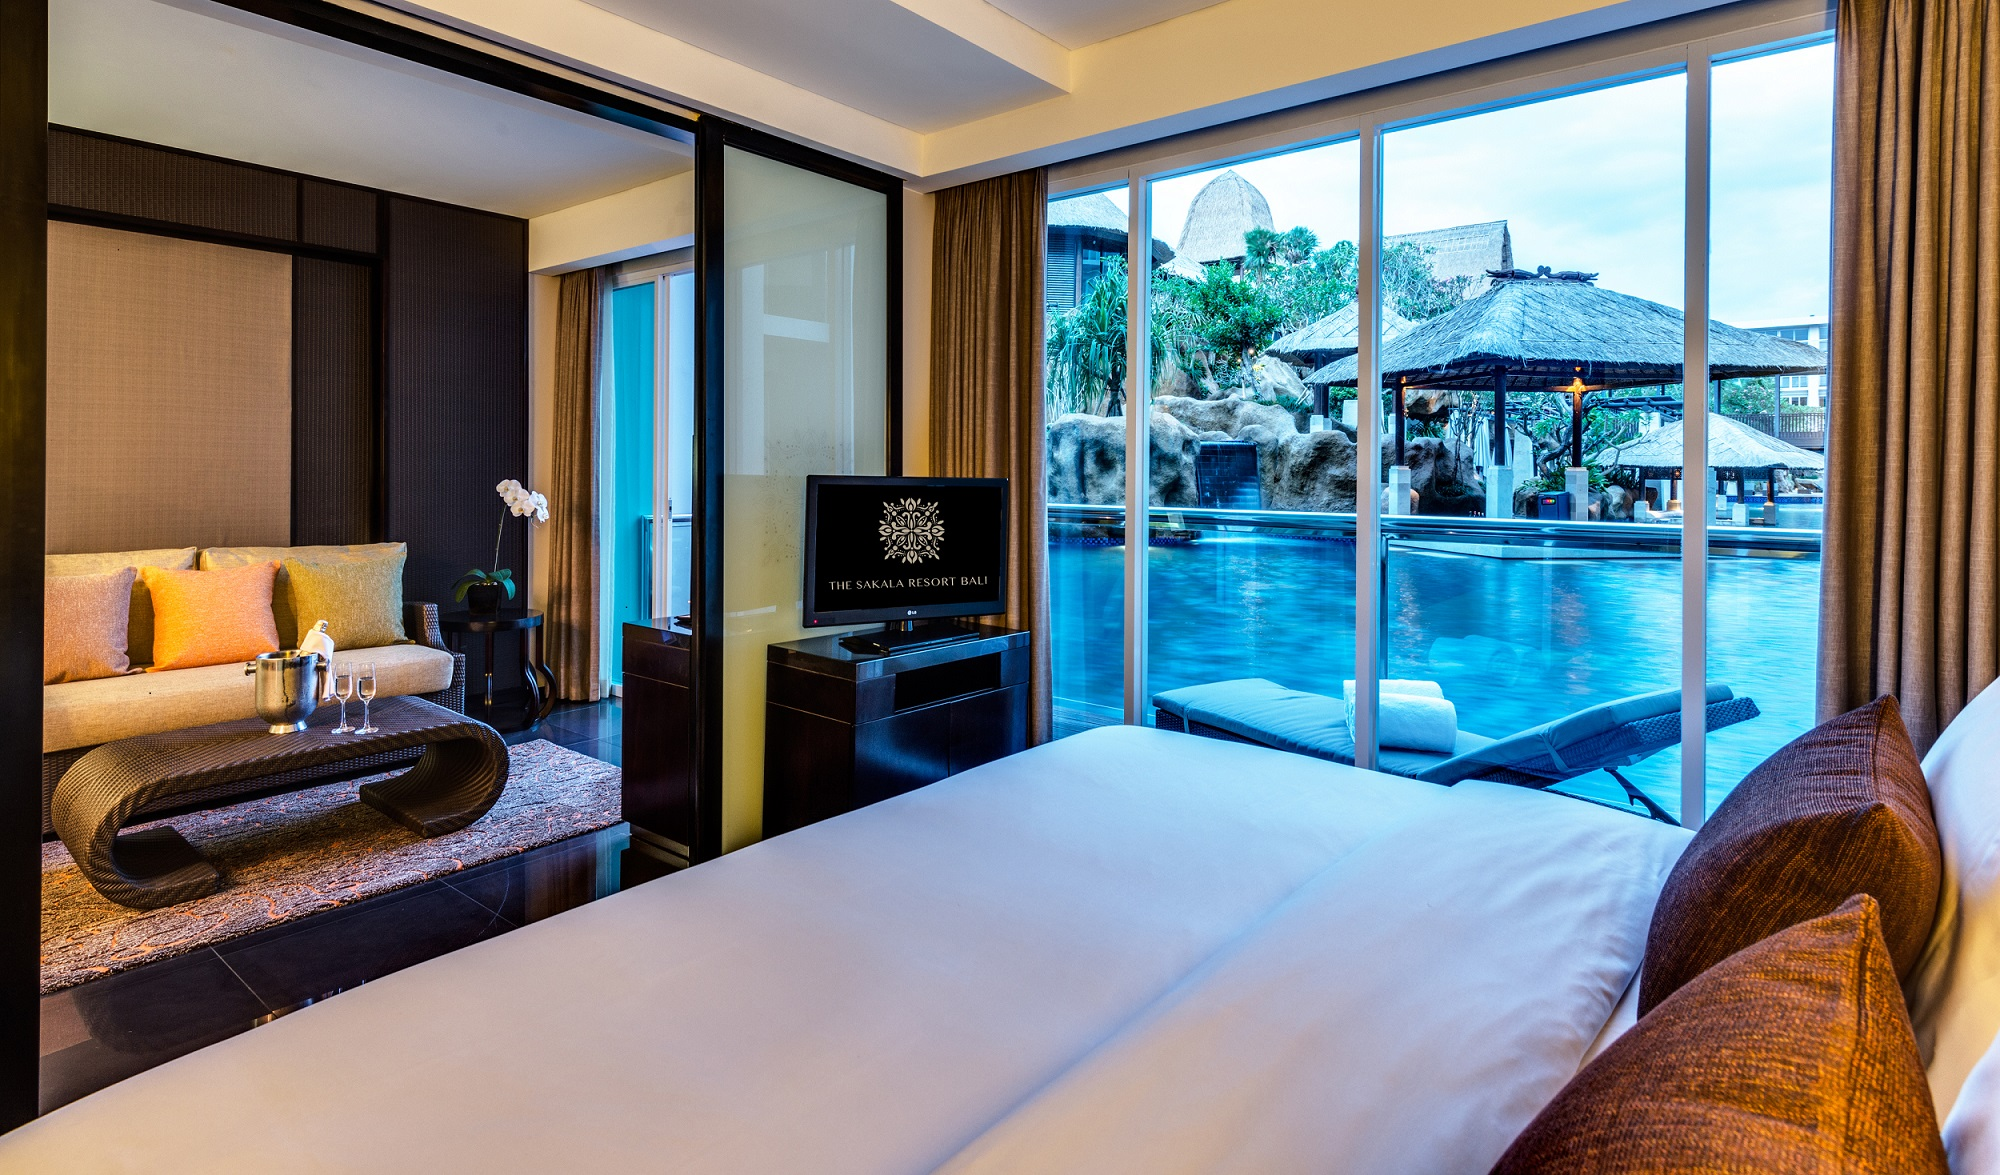 The Sakala Resort, Bali Indonesia Luxury Hotel Representation in Australia and New Zealand by GSA Hospitality